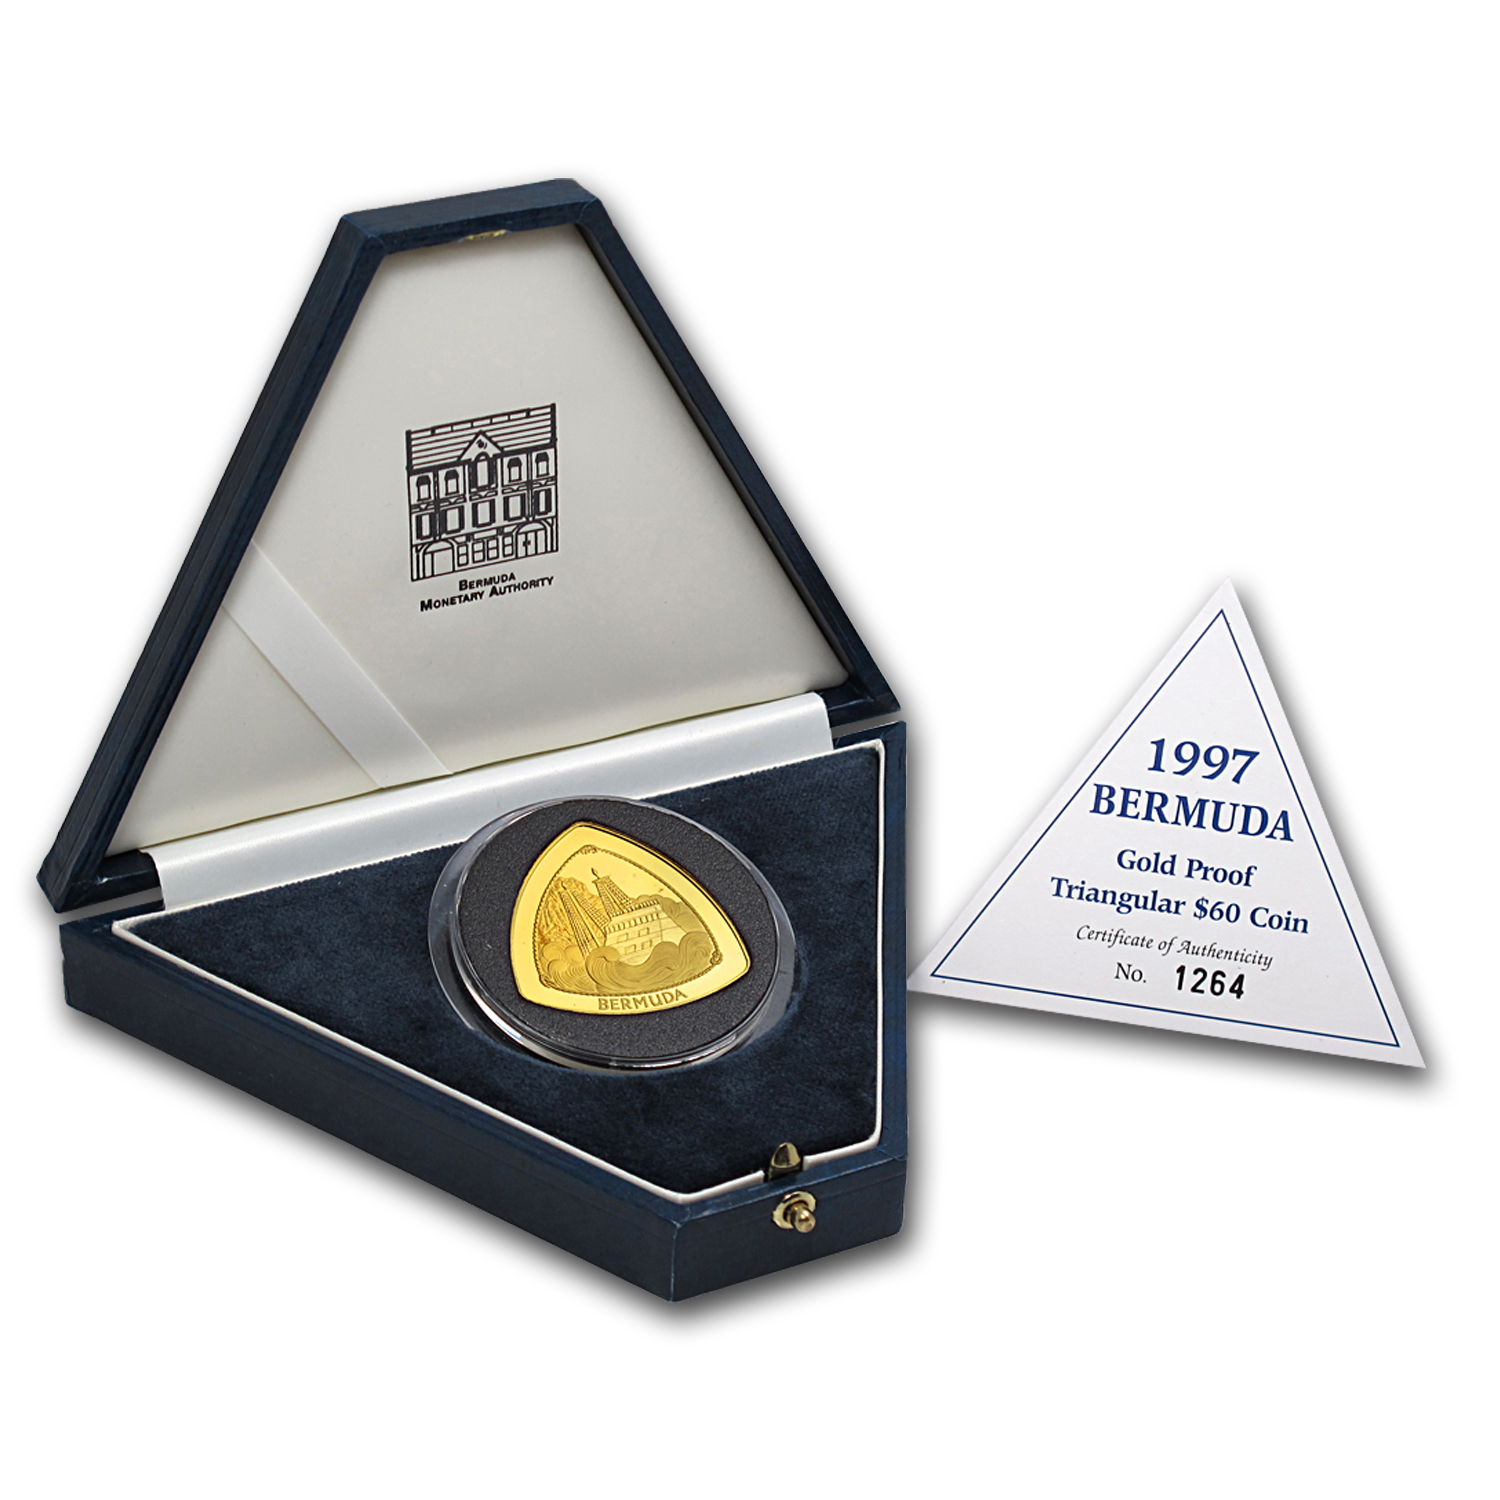 1997 Bermuda 1 oz Proof Gold $60 Triangle